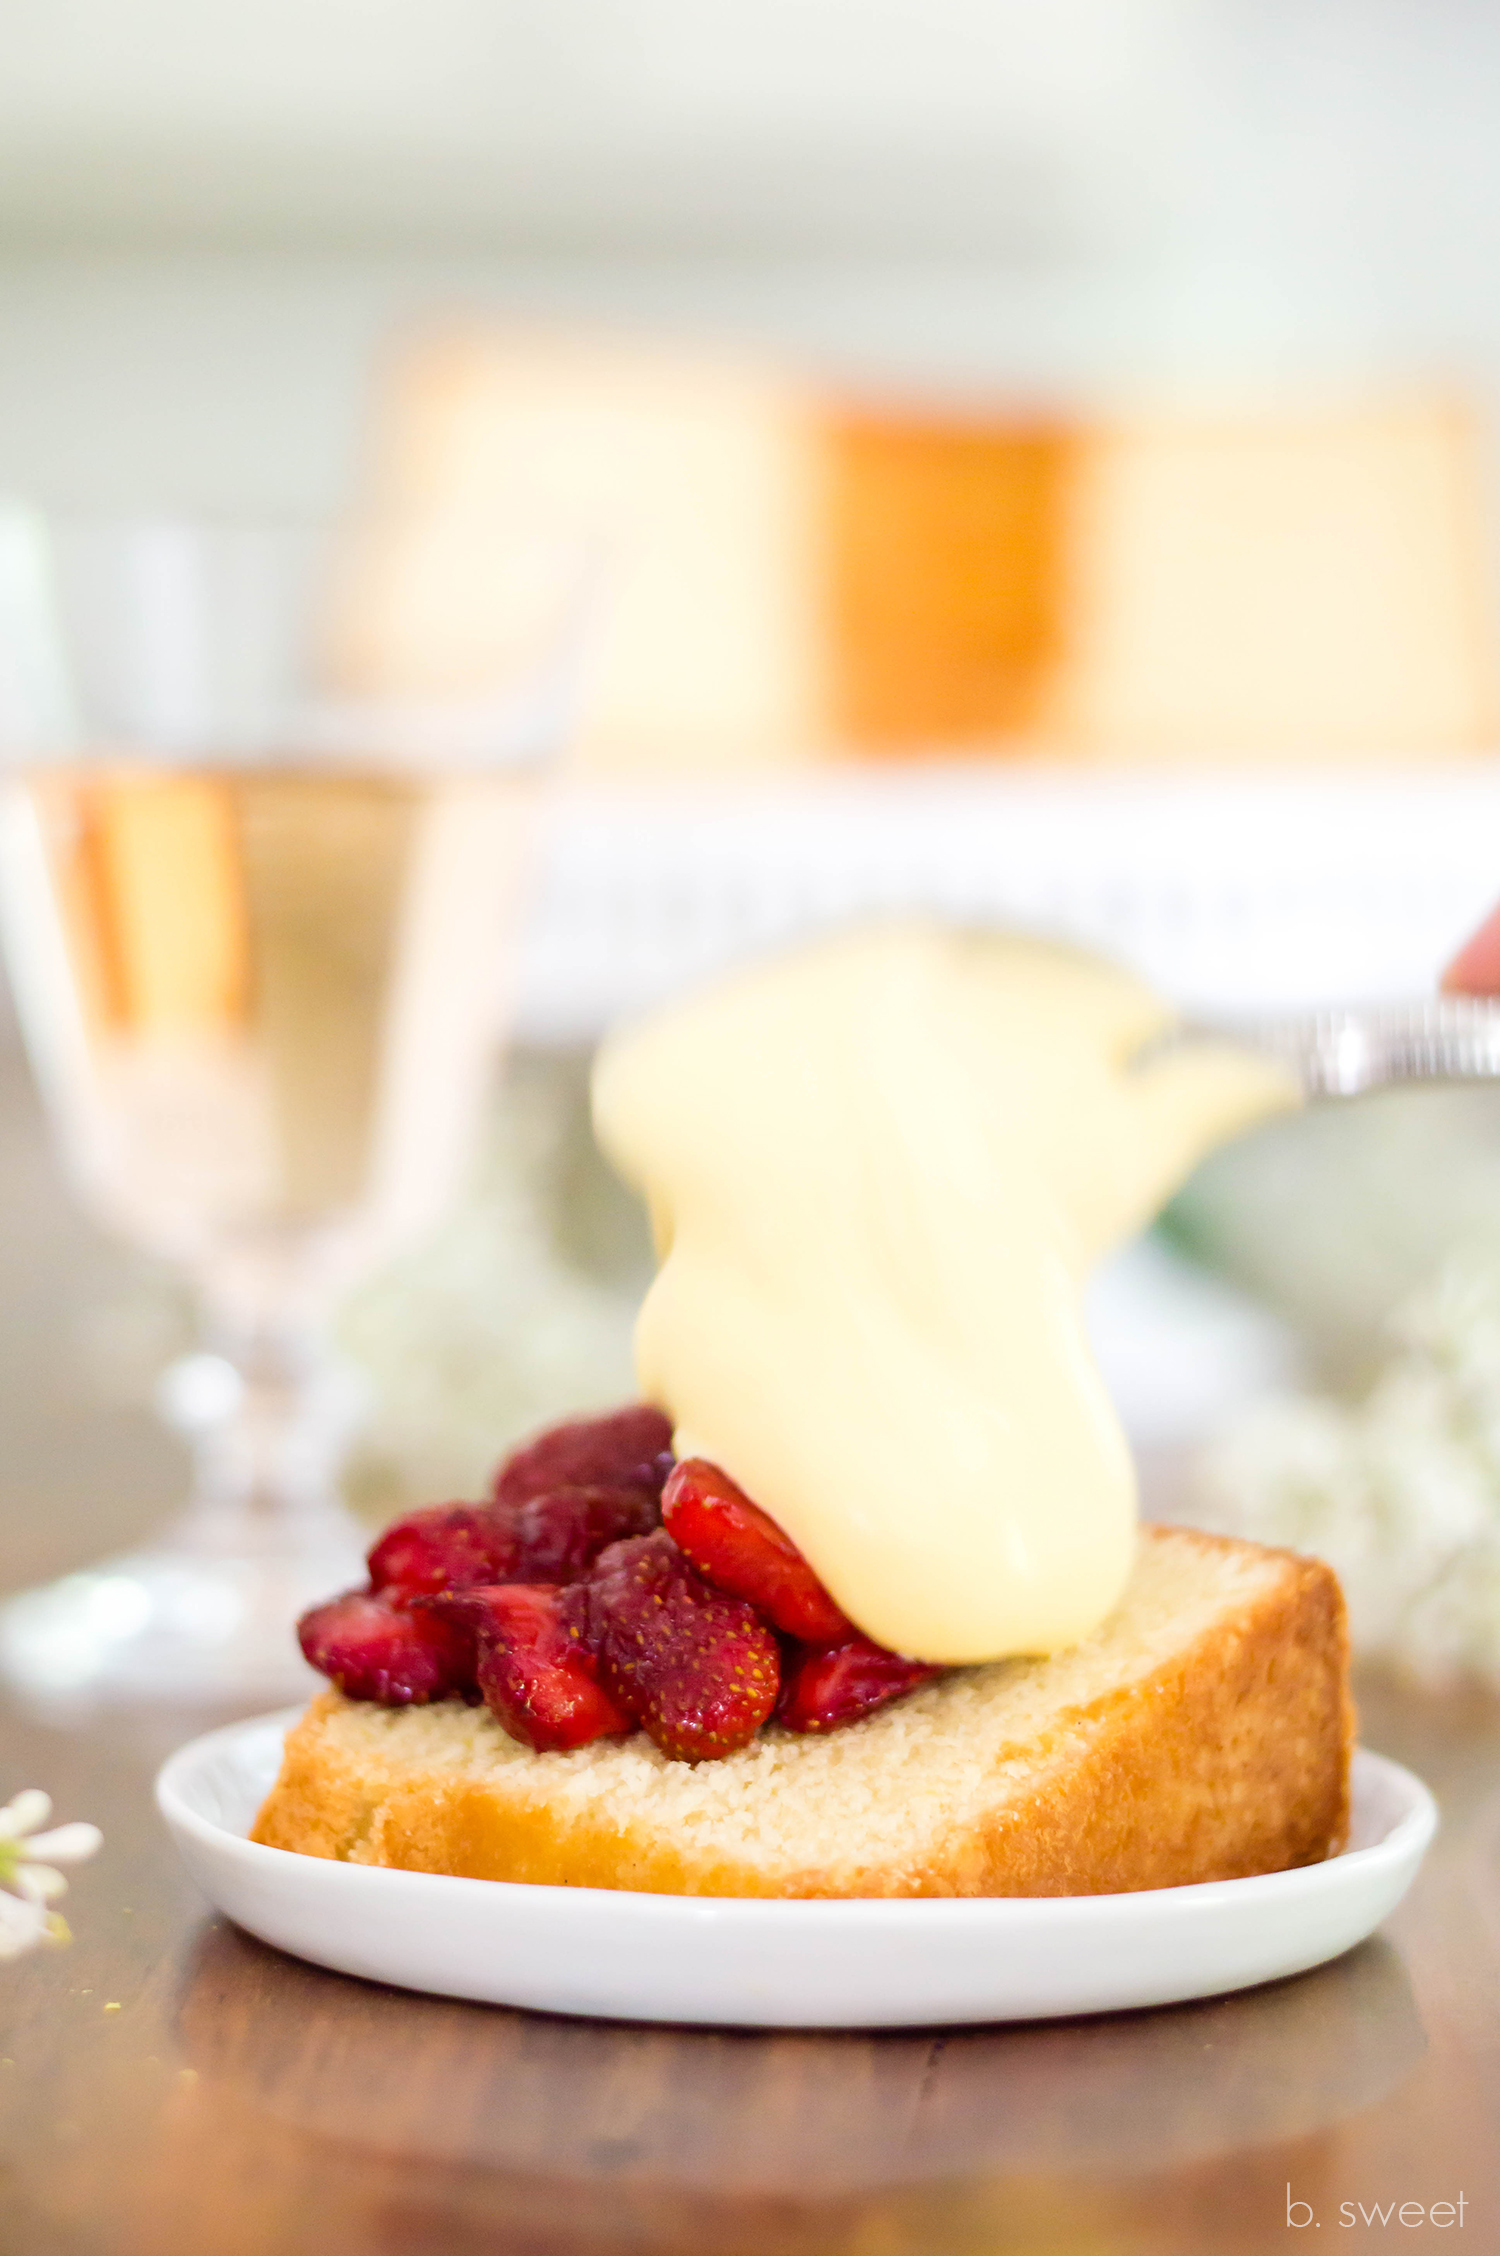 Lemon Pound Cake with Roasted Strawberries and Rosé Sabayon - b. sweet